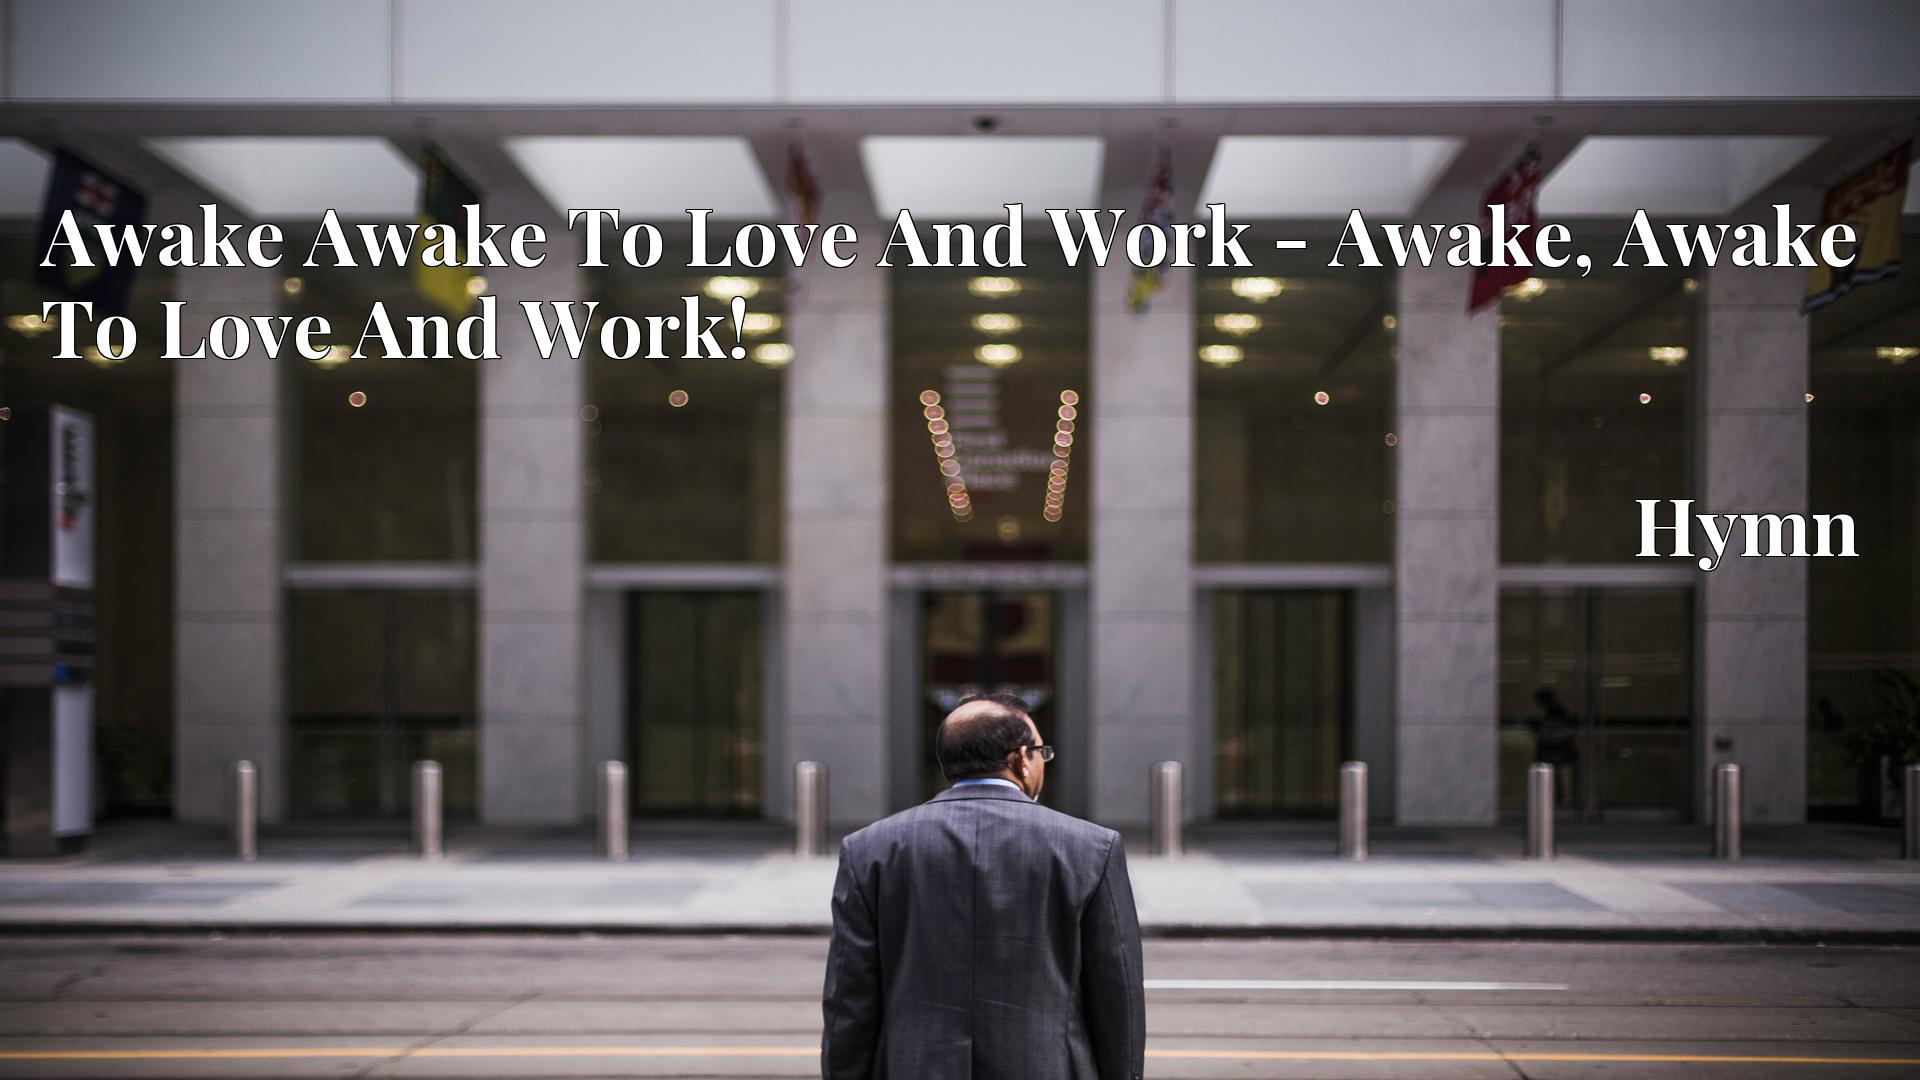 Awake Awake To Love And Work - Awake, Awake To Love And Work! - Hymn